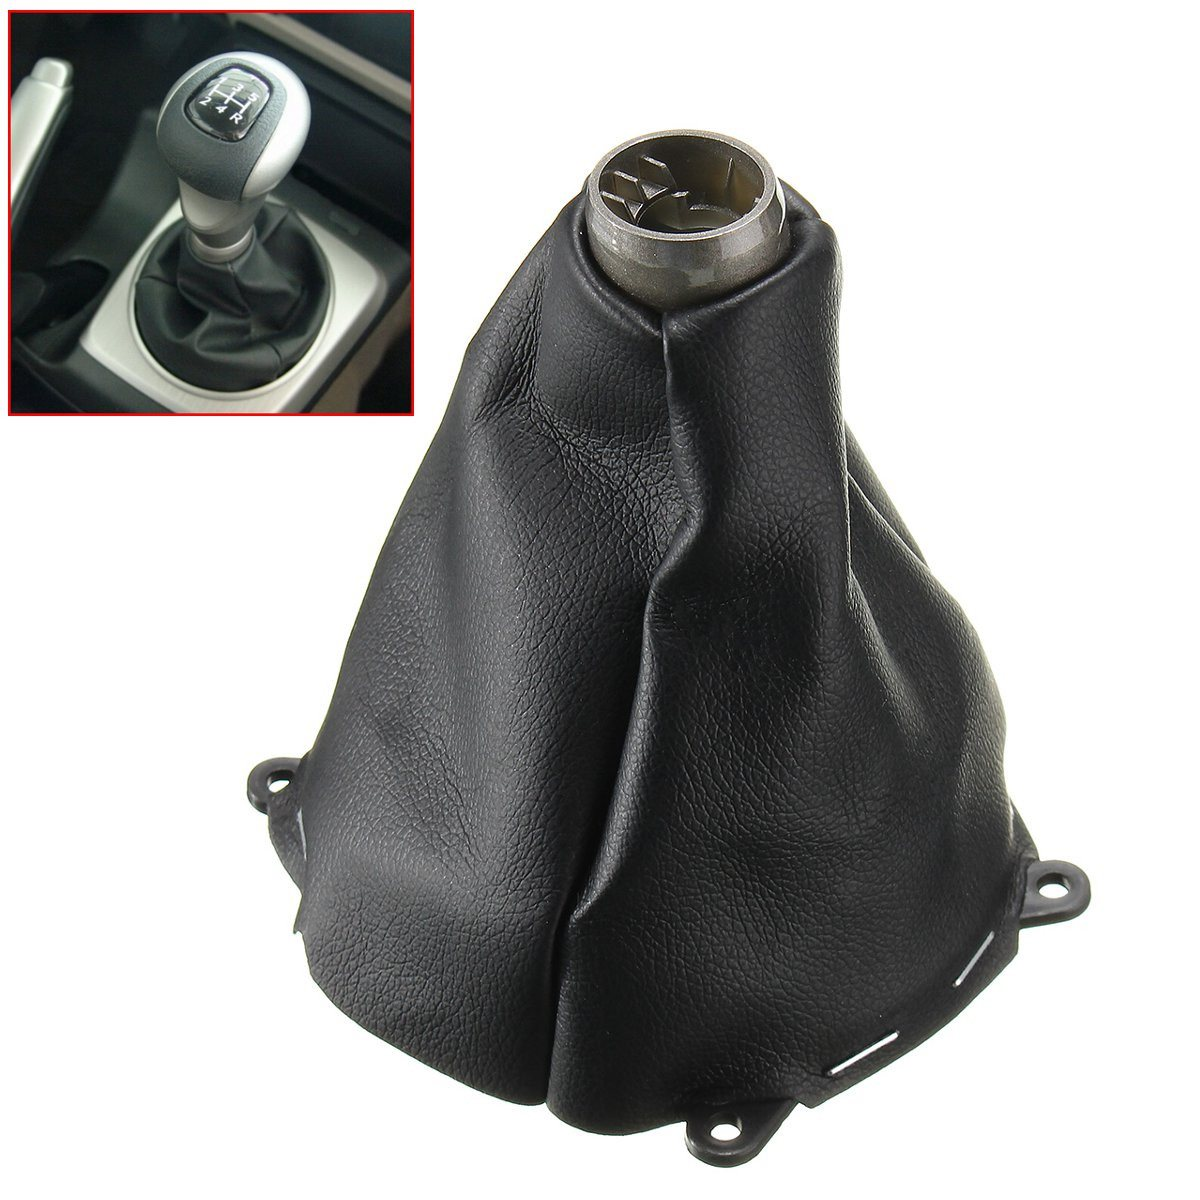 Car Manual Leather Gear Gaiter Shift Shifter Boot For Honda for Civic Si  2006 2007 2008 2009 2010 2011 Black Gear Shift Collars-in Gear Shift  Collars from ...